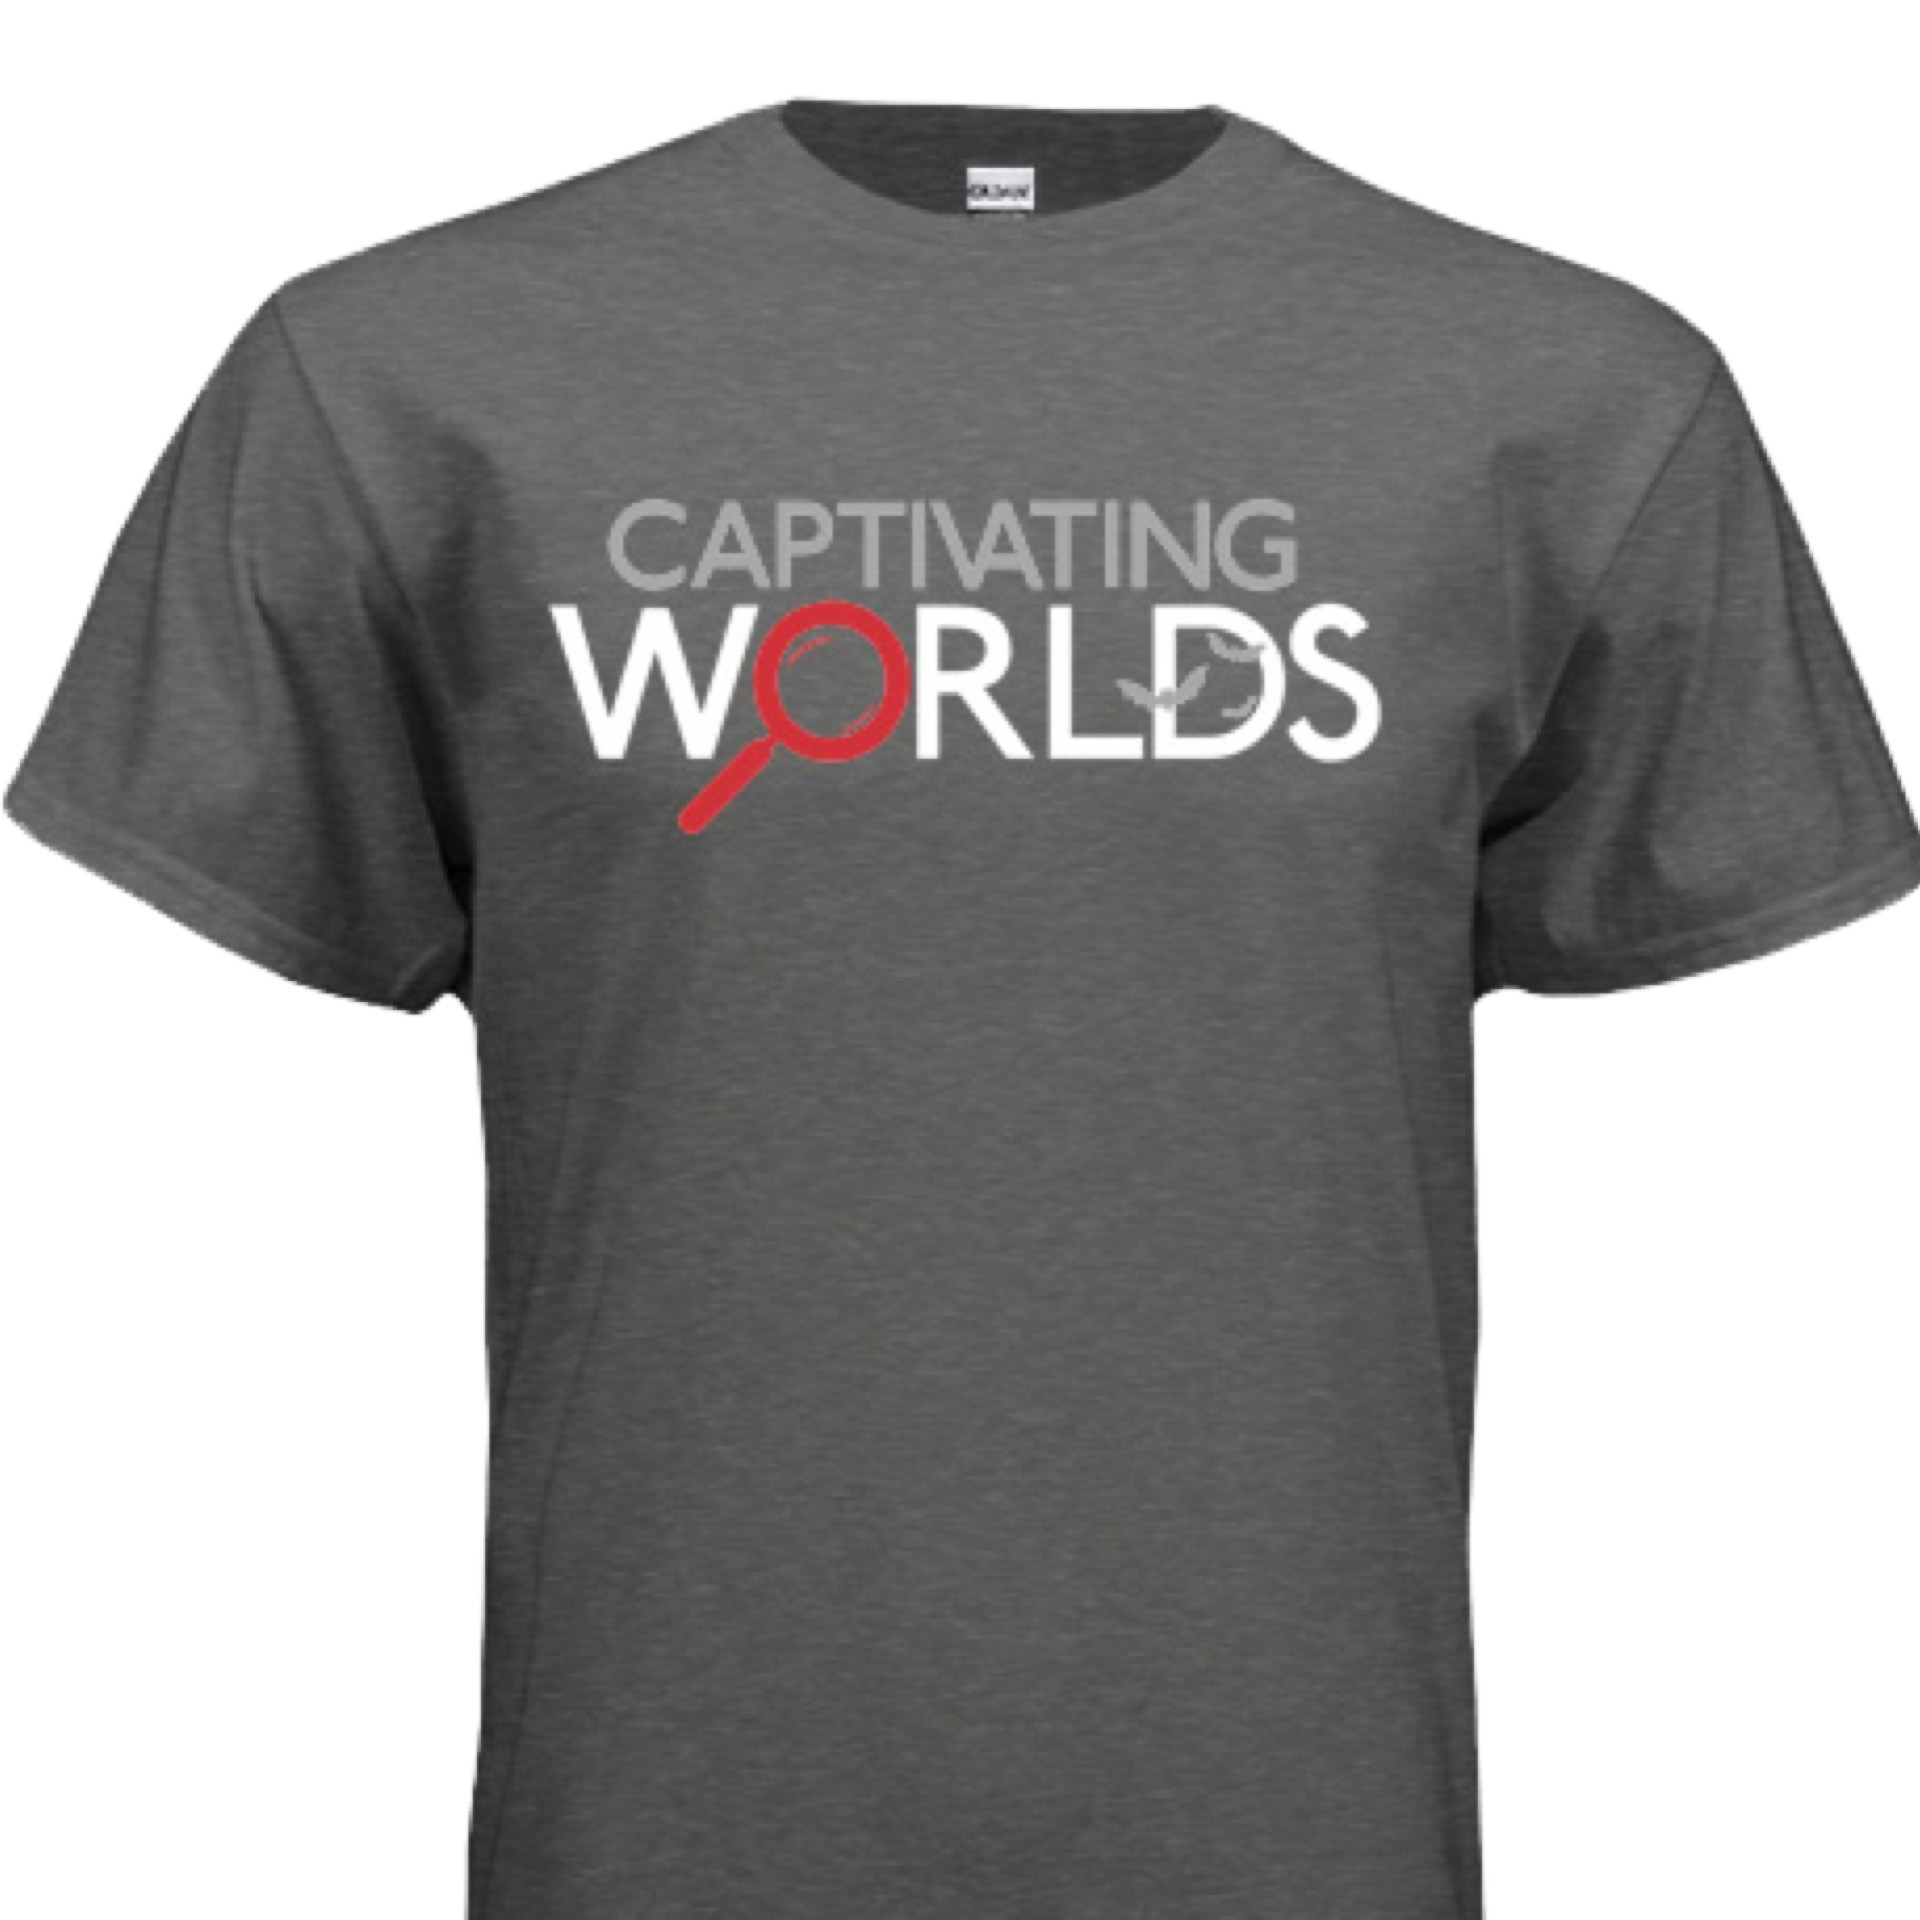 Captivating Worlds Logo T-shirt - Mens/Unisex